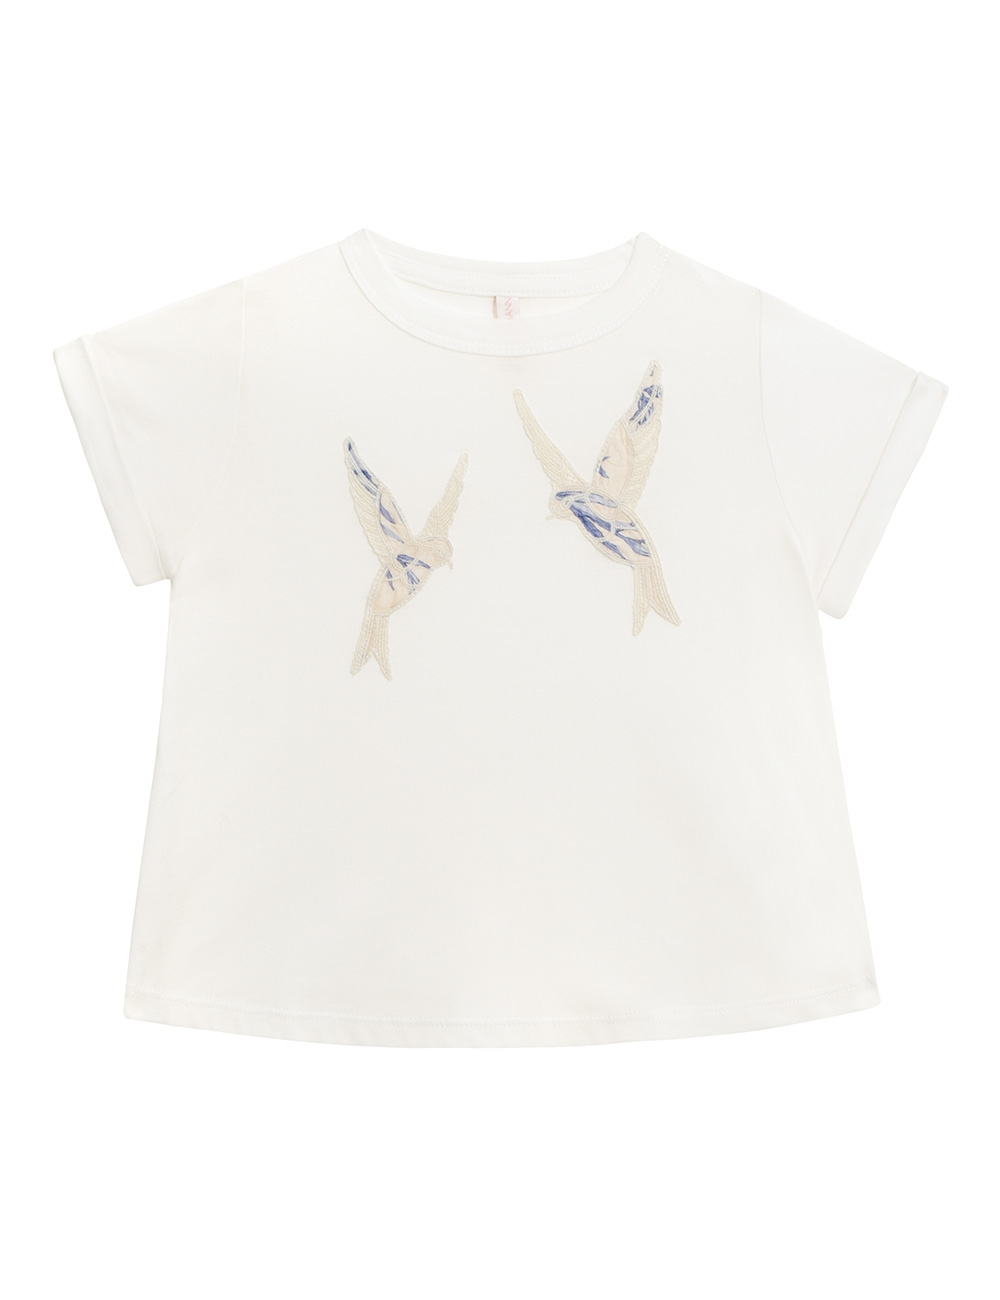 Verity Bluebird Tee